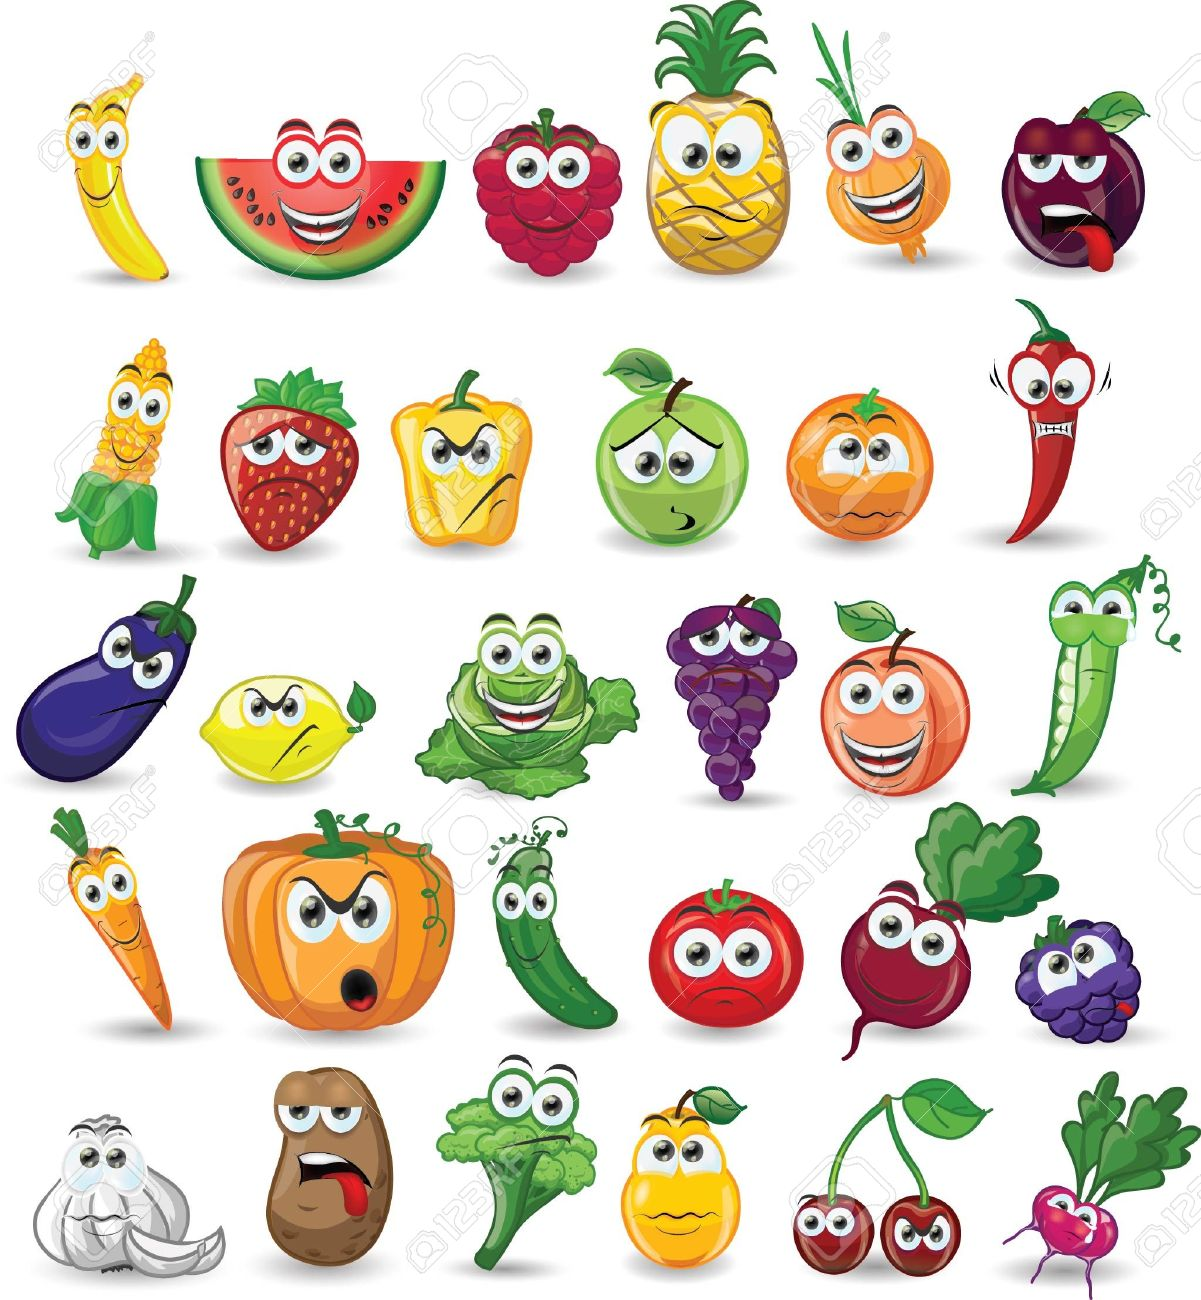 Cartoon vegetables and fruits - 25040994